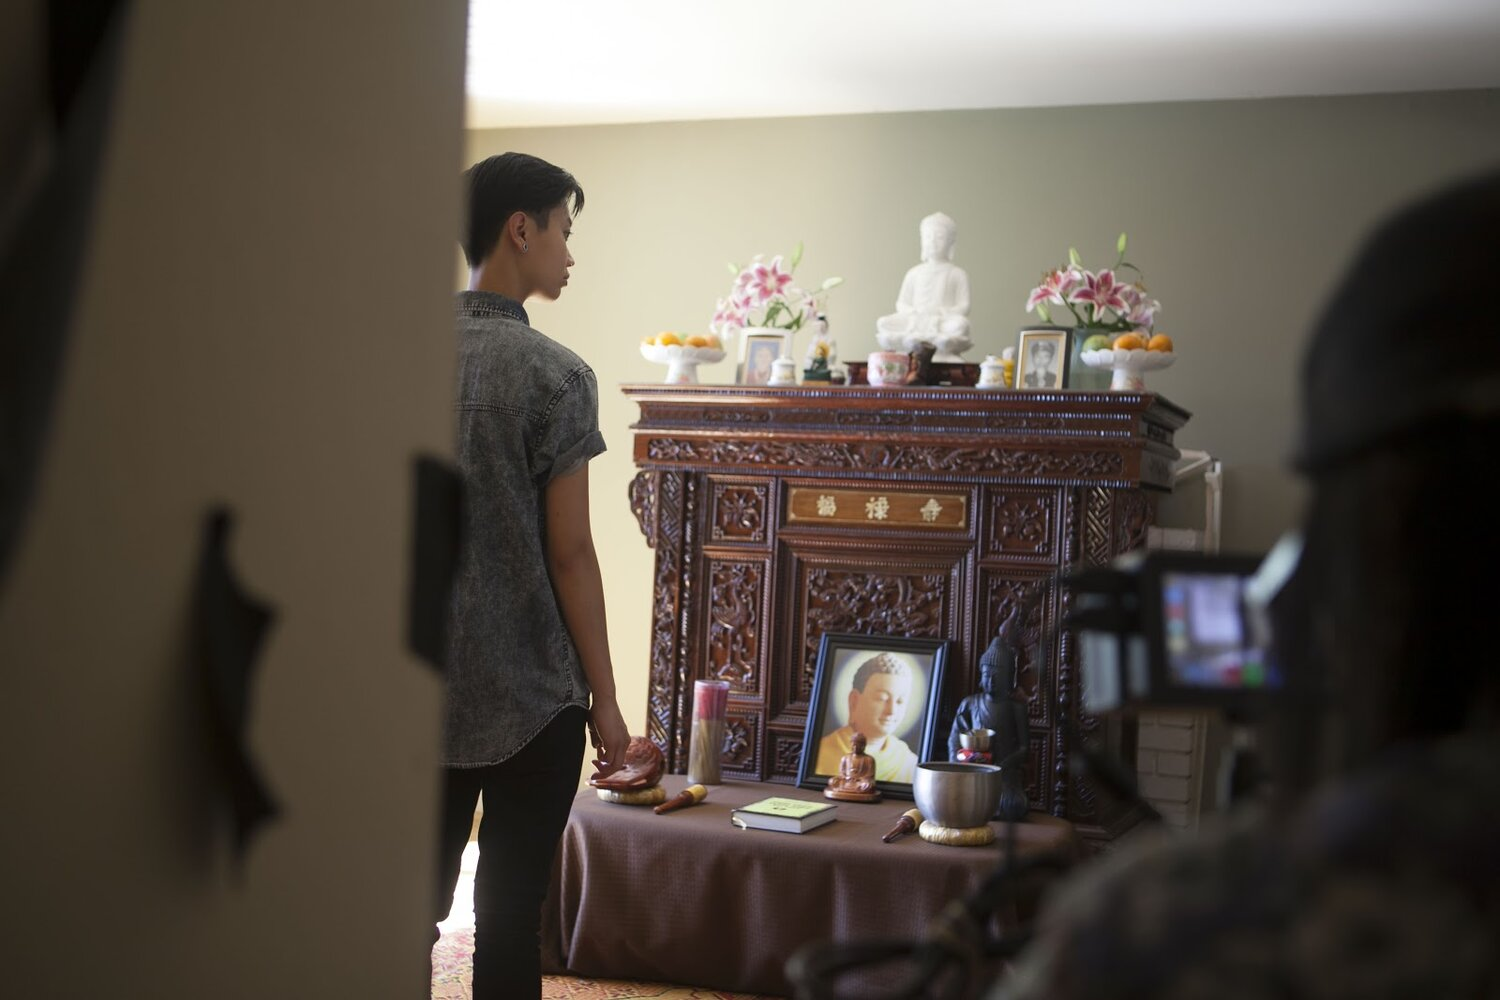 Actor Ck Ong stands in front of an altar adorned with Buddhist photos, statues, incense, and bells.